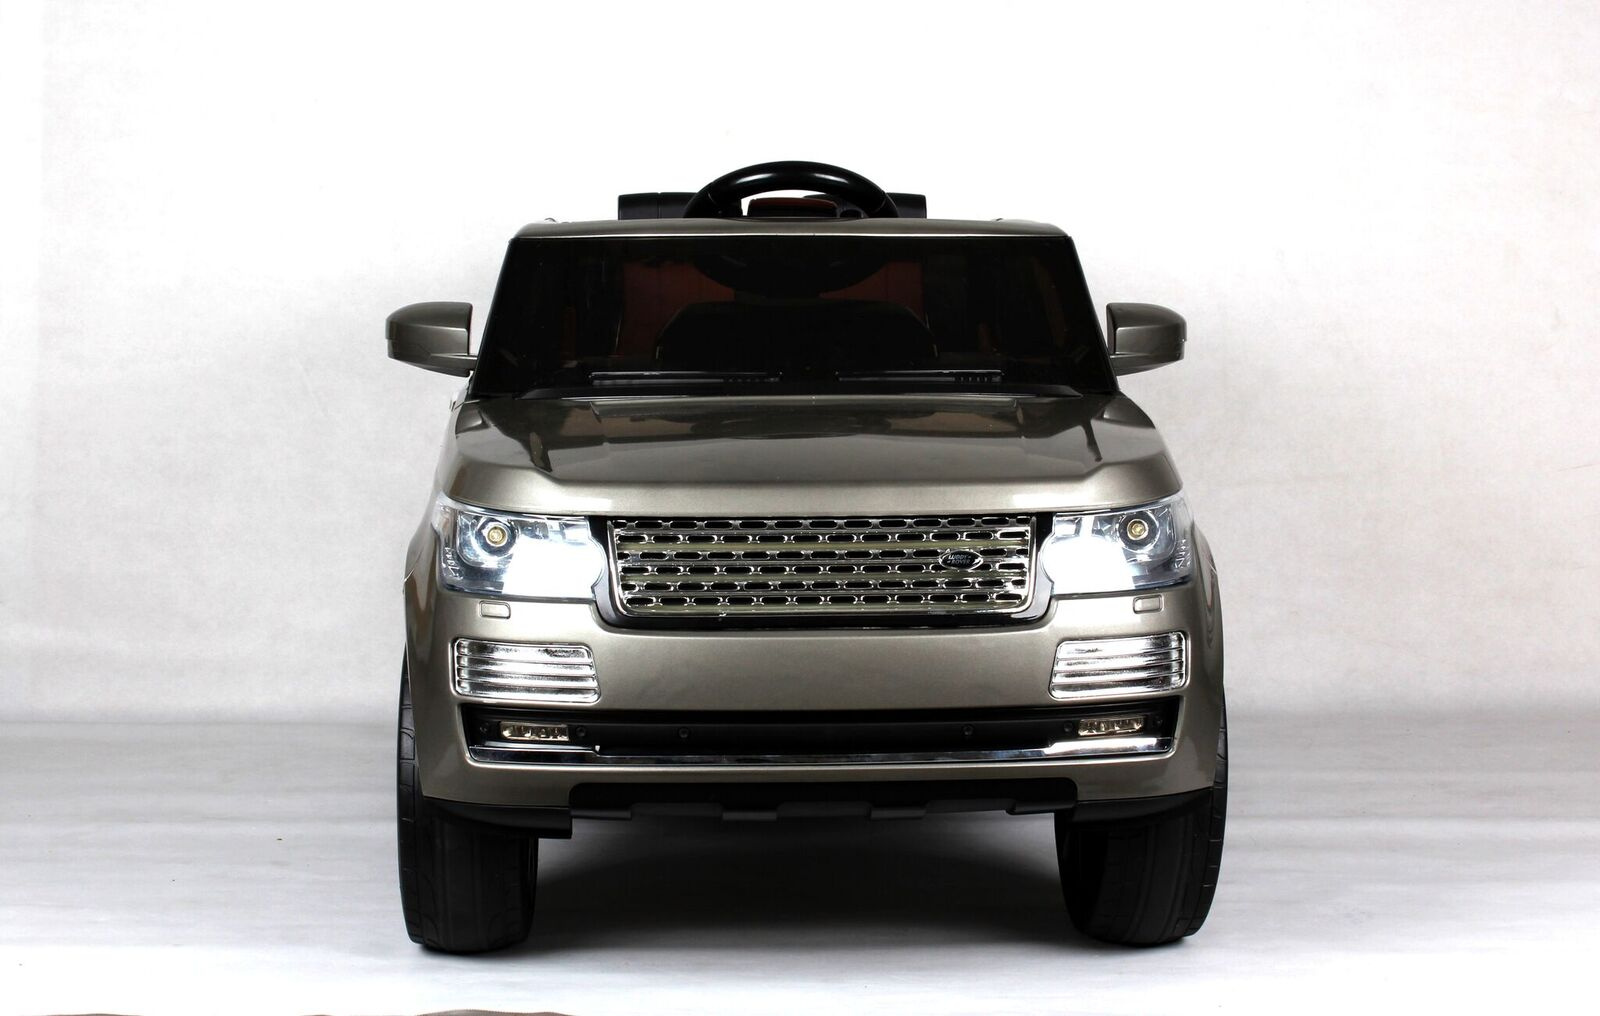 Электромобиль Range Rover Vogue серый